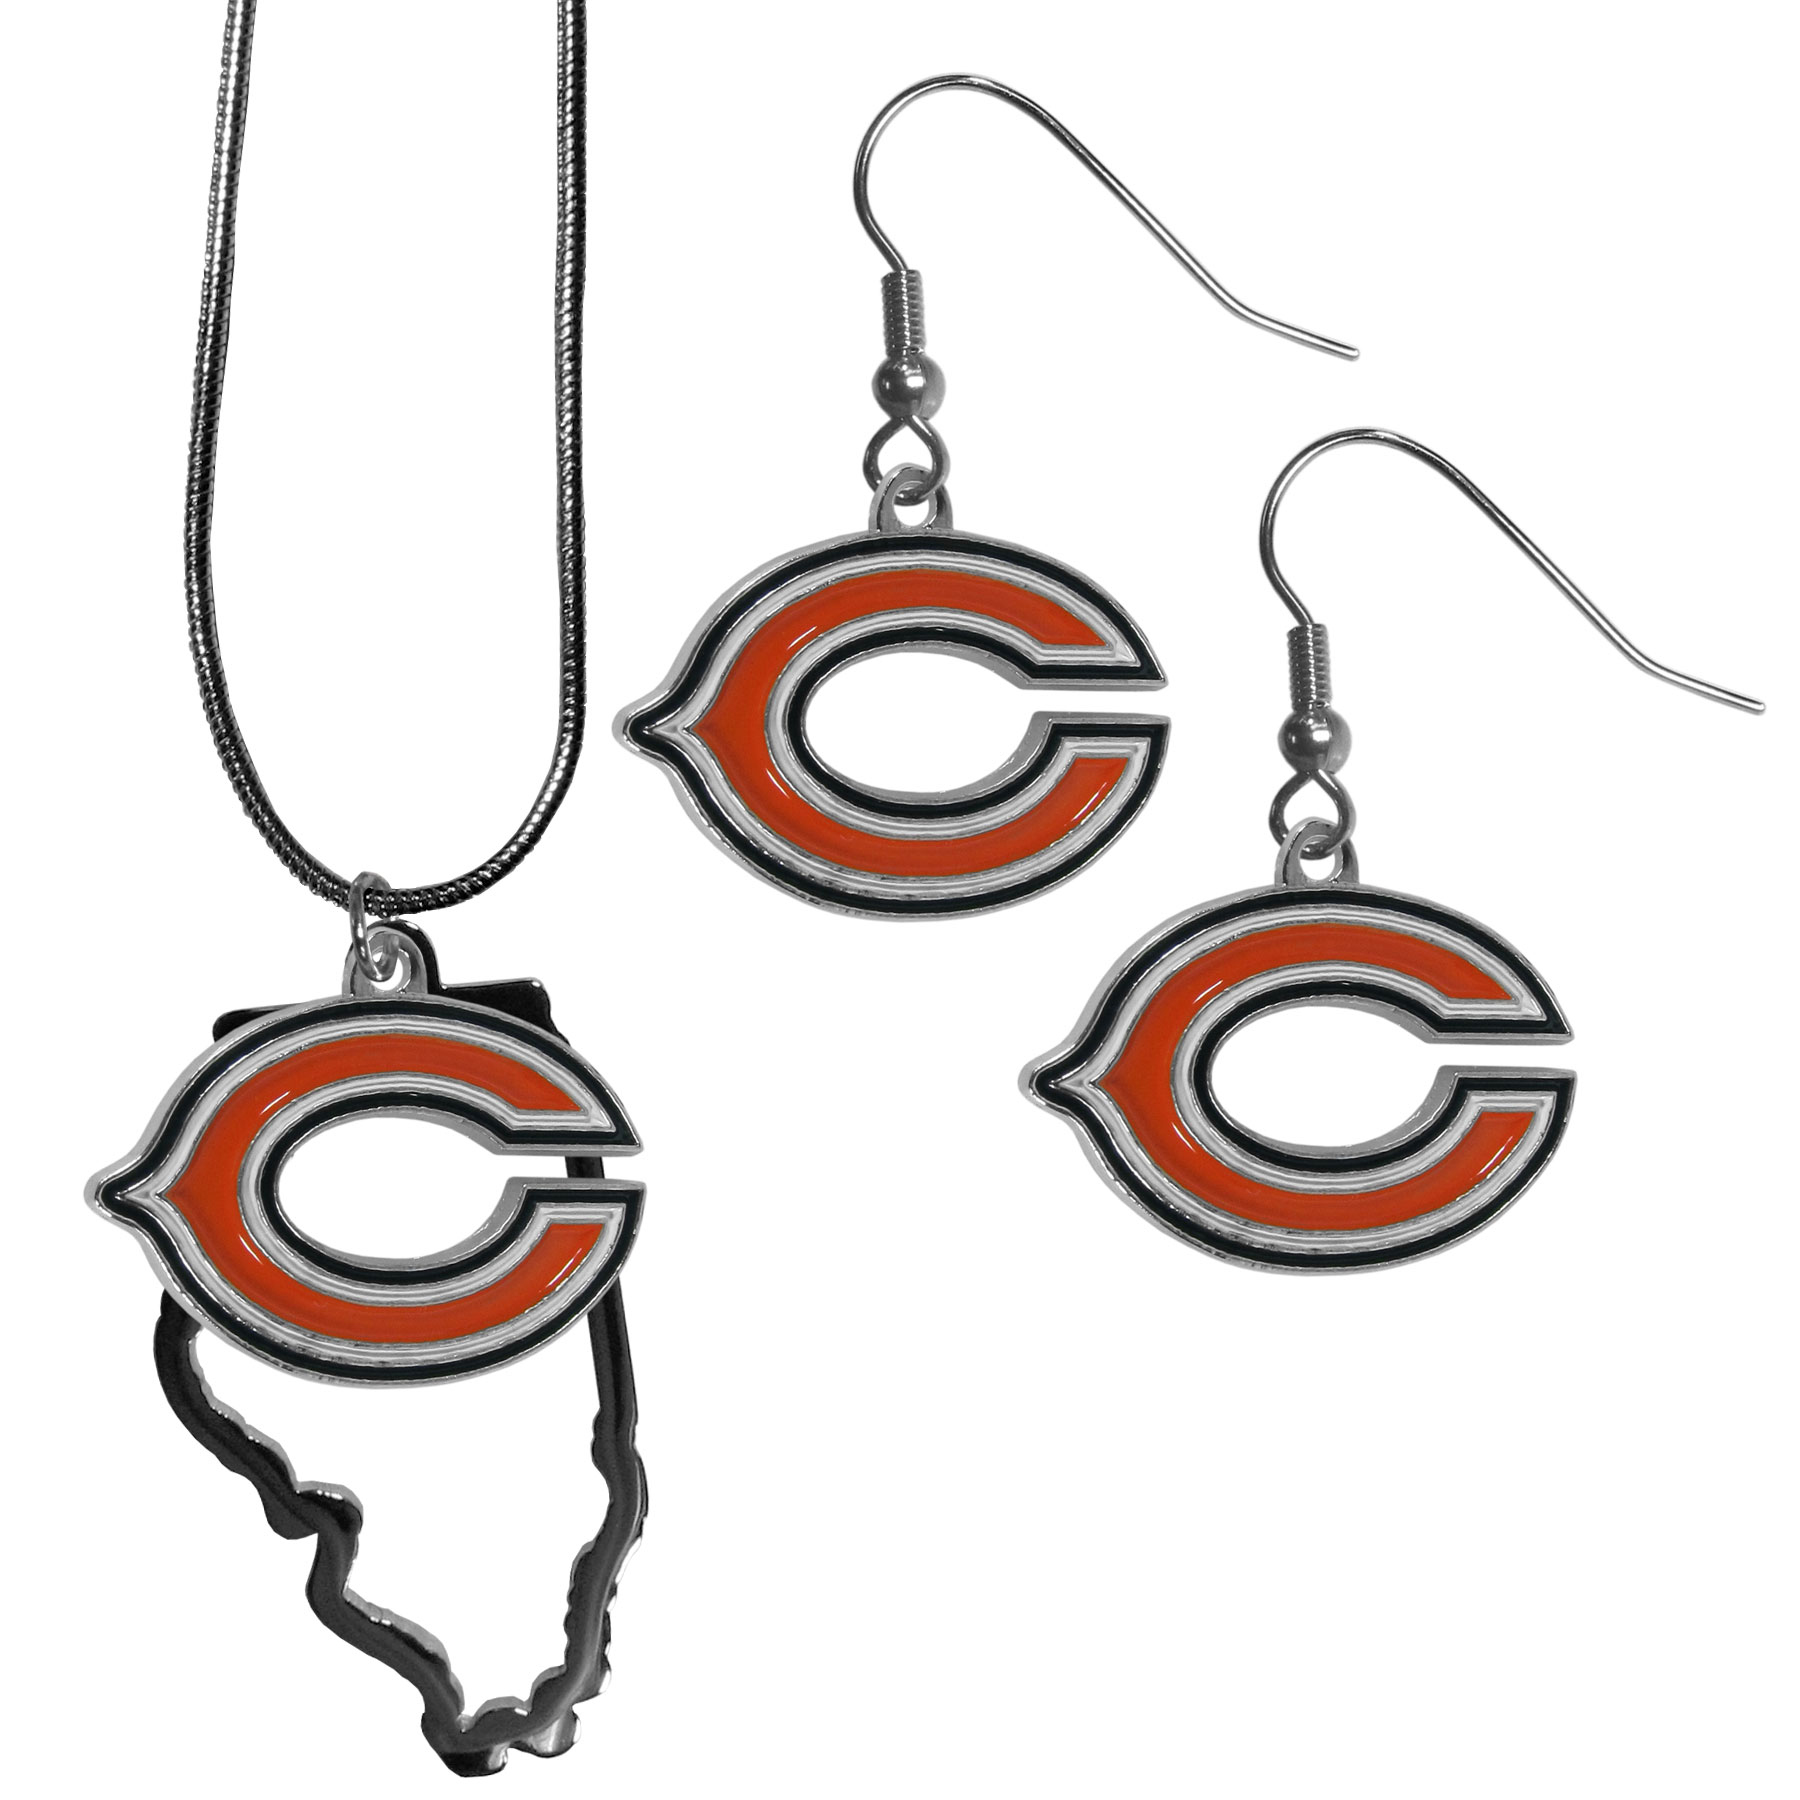 Chicago Bears Dangle Earrings and State Necklace Set - Get in on the trend! State themes are a trend that just keeps getting more popular and this jewelry set takes the state style and give it a sporty twist with a Chicago Bears necklace that features an Arizona state outline charm paired with a beautiful team charm and matching team charm dangle earrings. The earrings feature hypoallergenic fishhook posts that are nickel free.